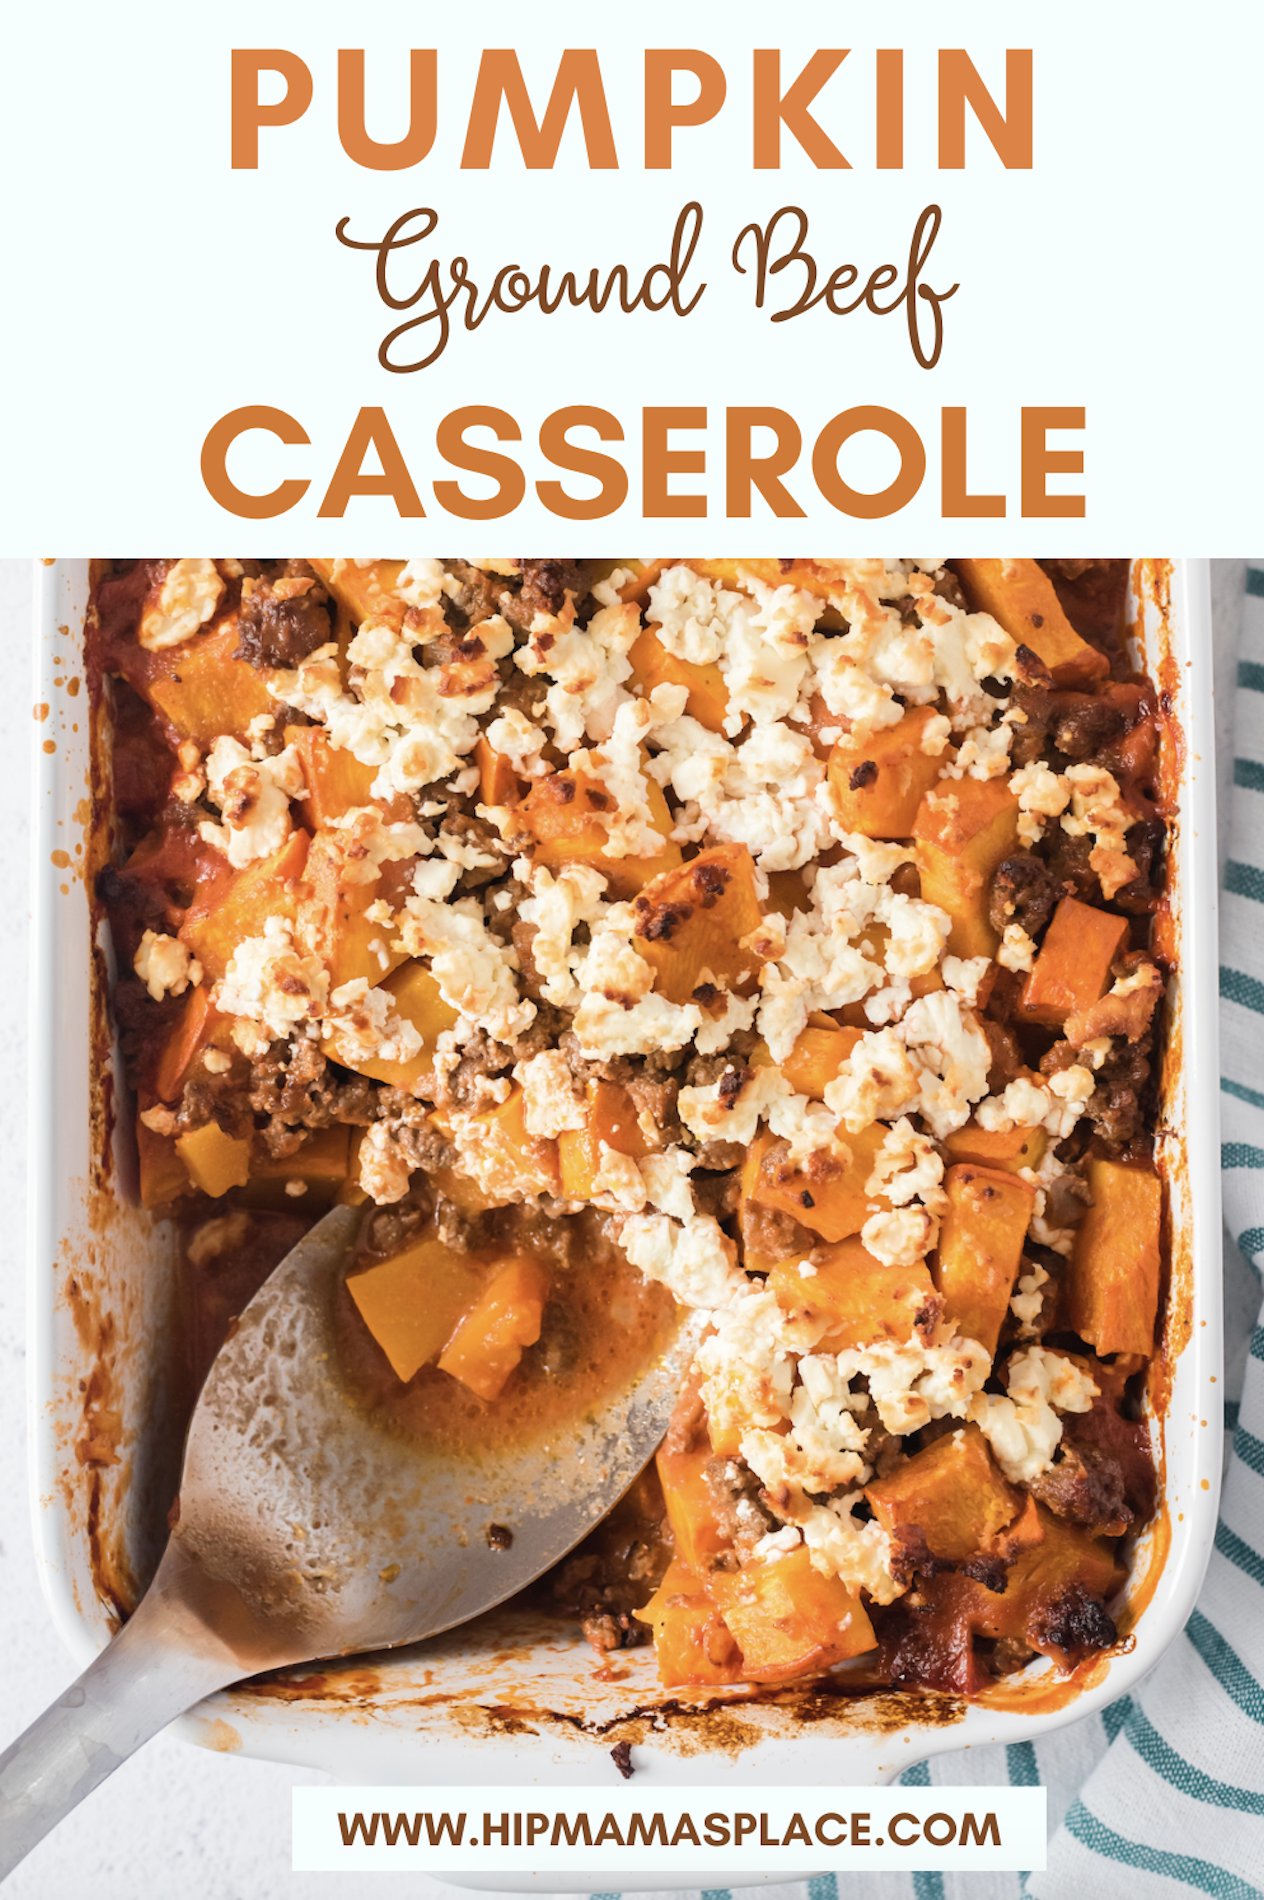 Bring pumpkin to your dinner table this fall with this delicious and savory pumpkin ground beef casserole dish!